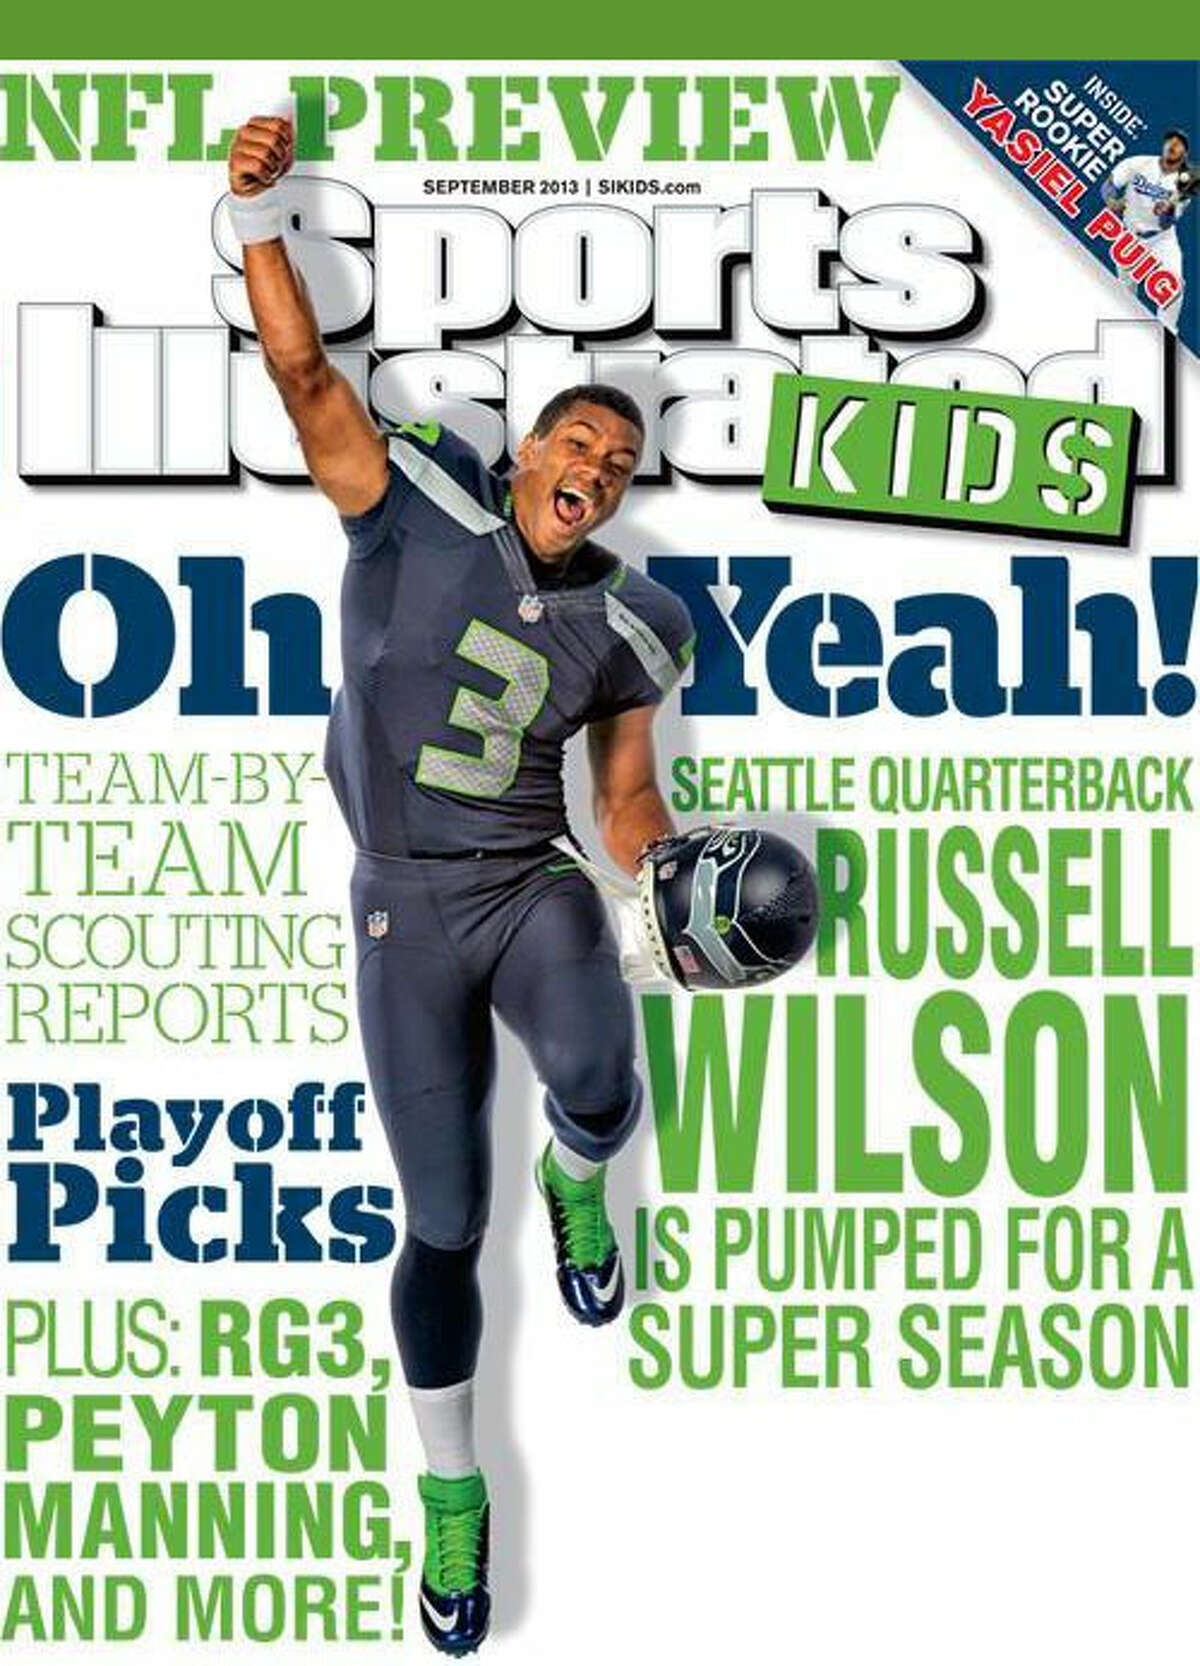 Russell Wilson leaped for joy to be on the cover of the September issue of Sports Illustrated Kids.